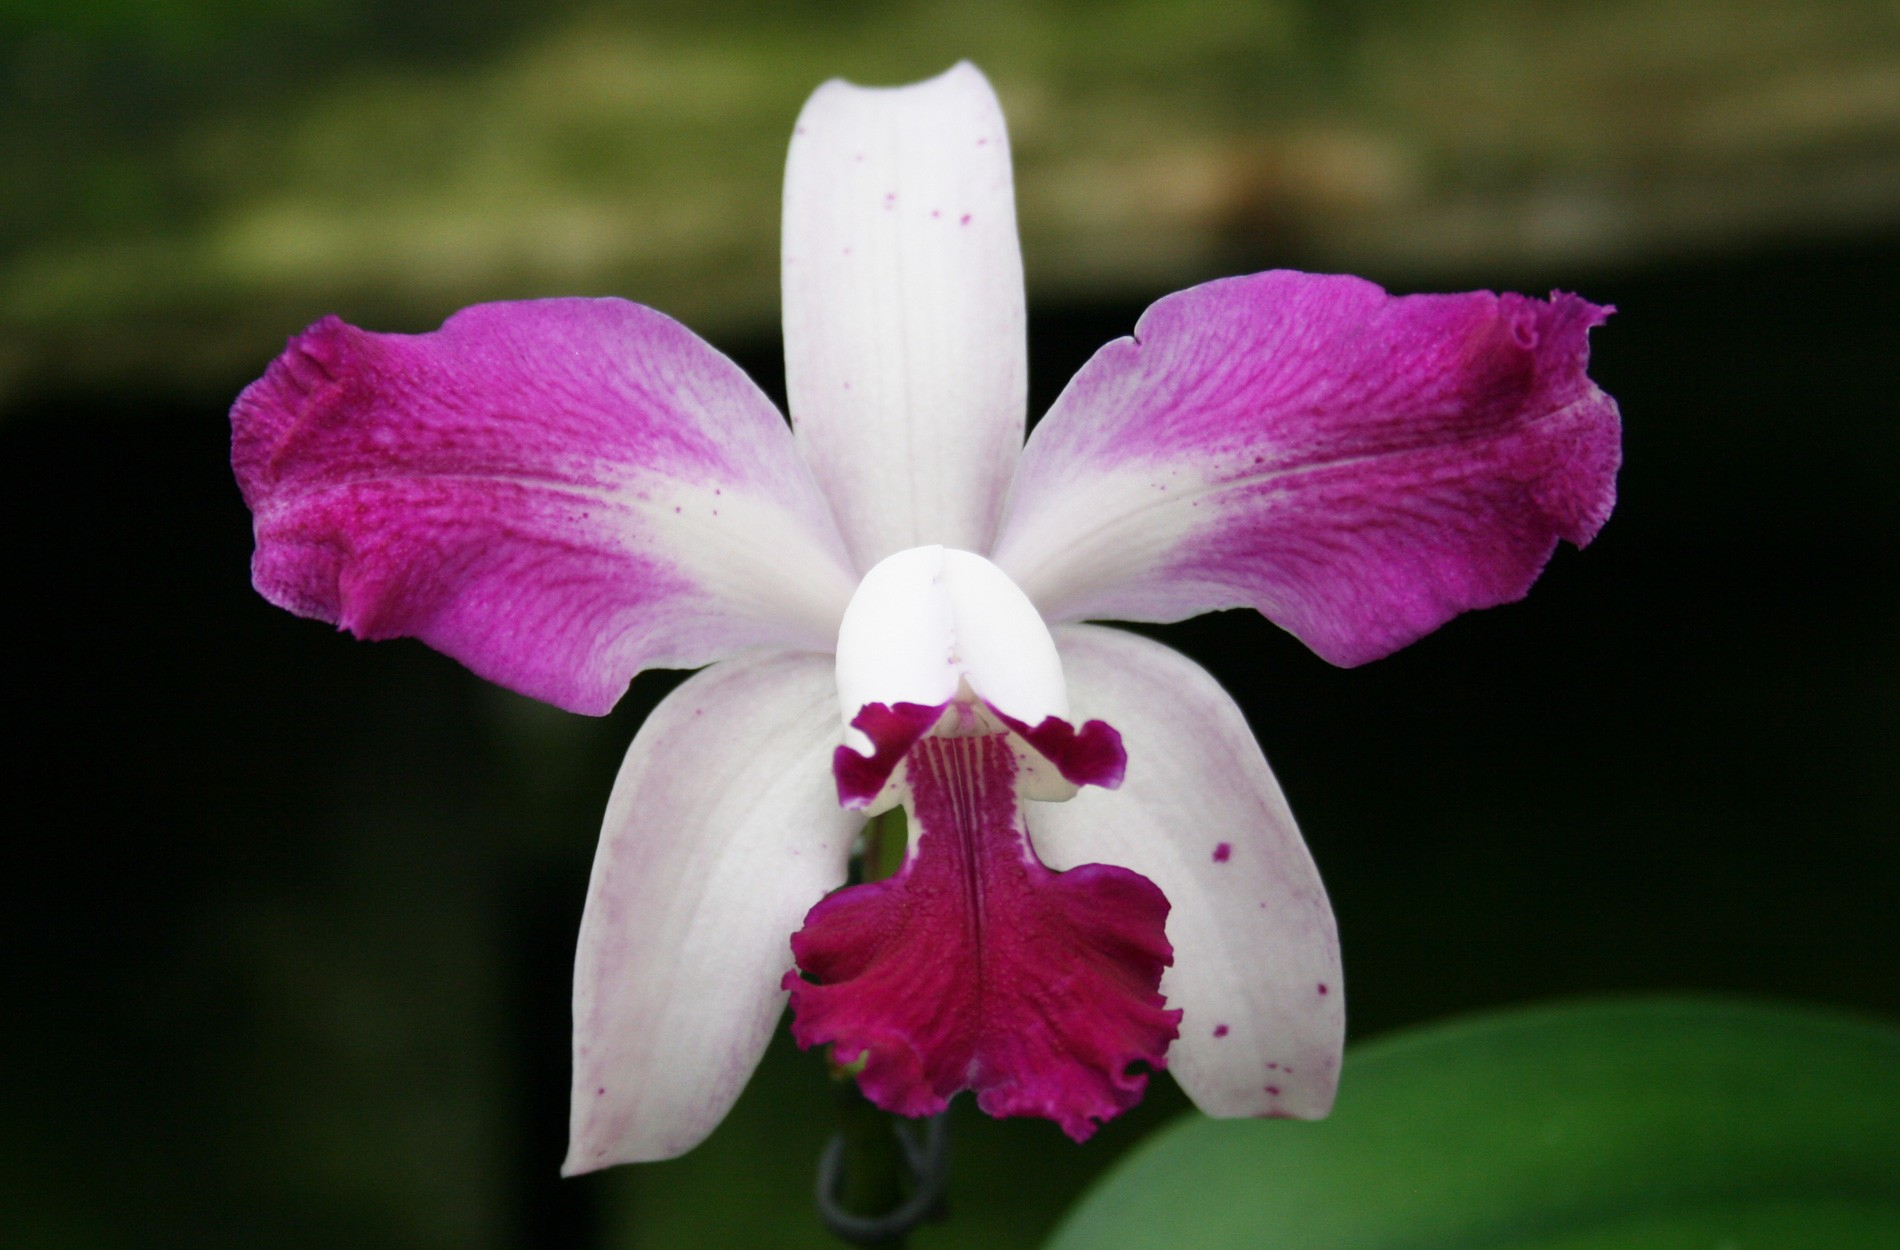 CattleyaInterglossa2 - Beautiful Orchid Flowers In The World